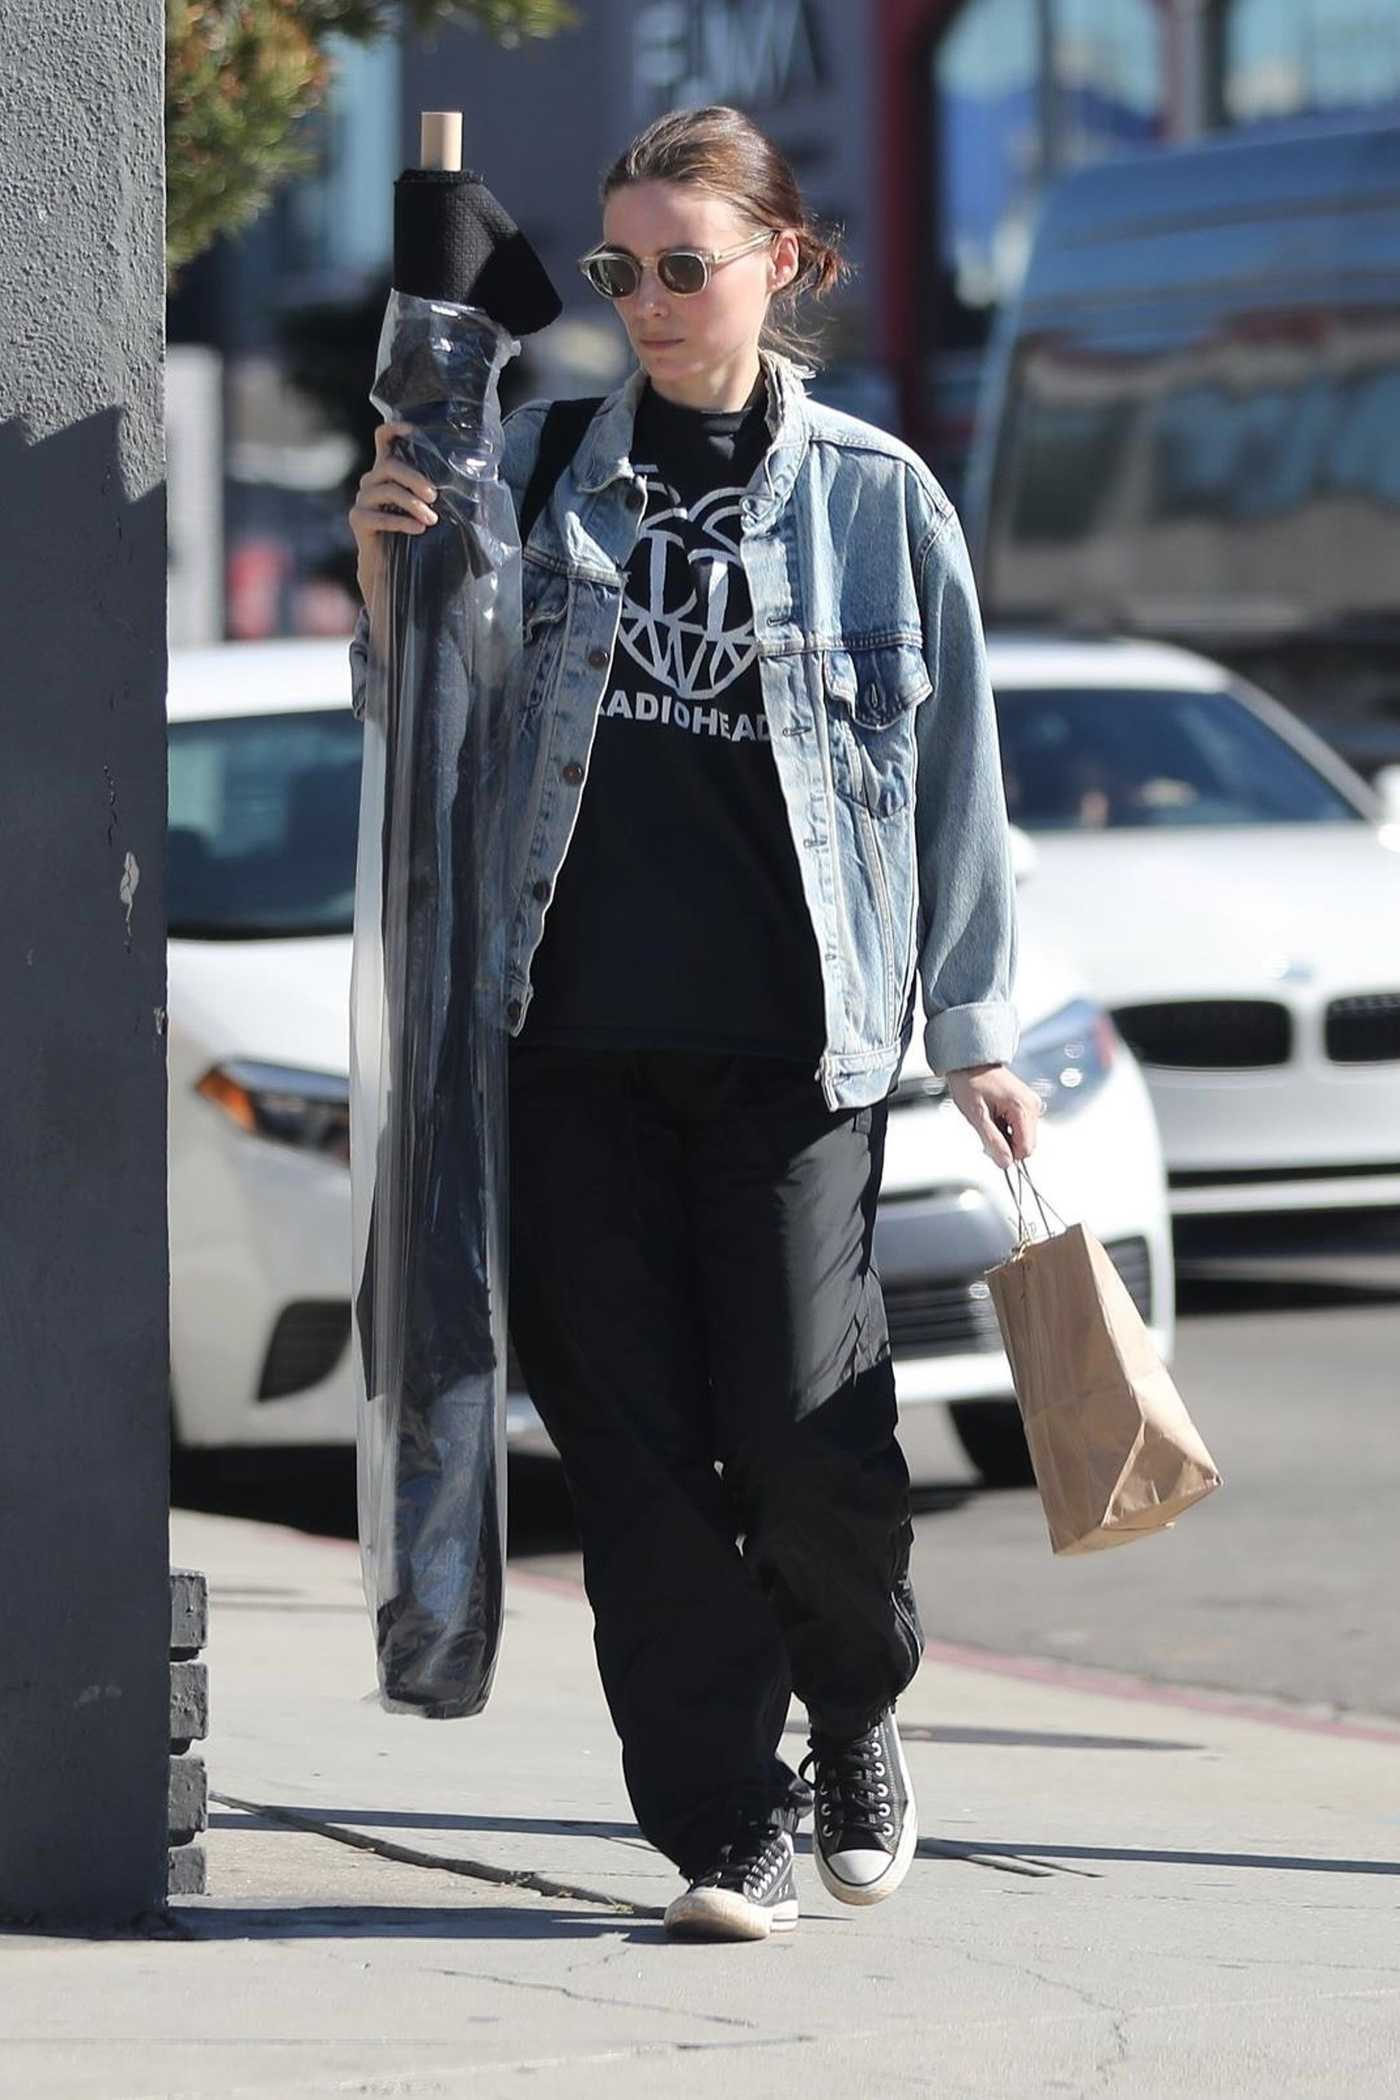 Rooney Mara in a Blue Denim Jacket Out Shopping in West Hollywood 01/25/2019